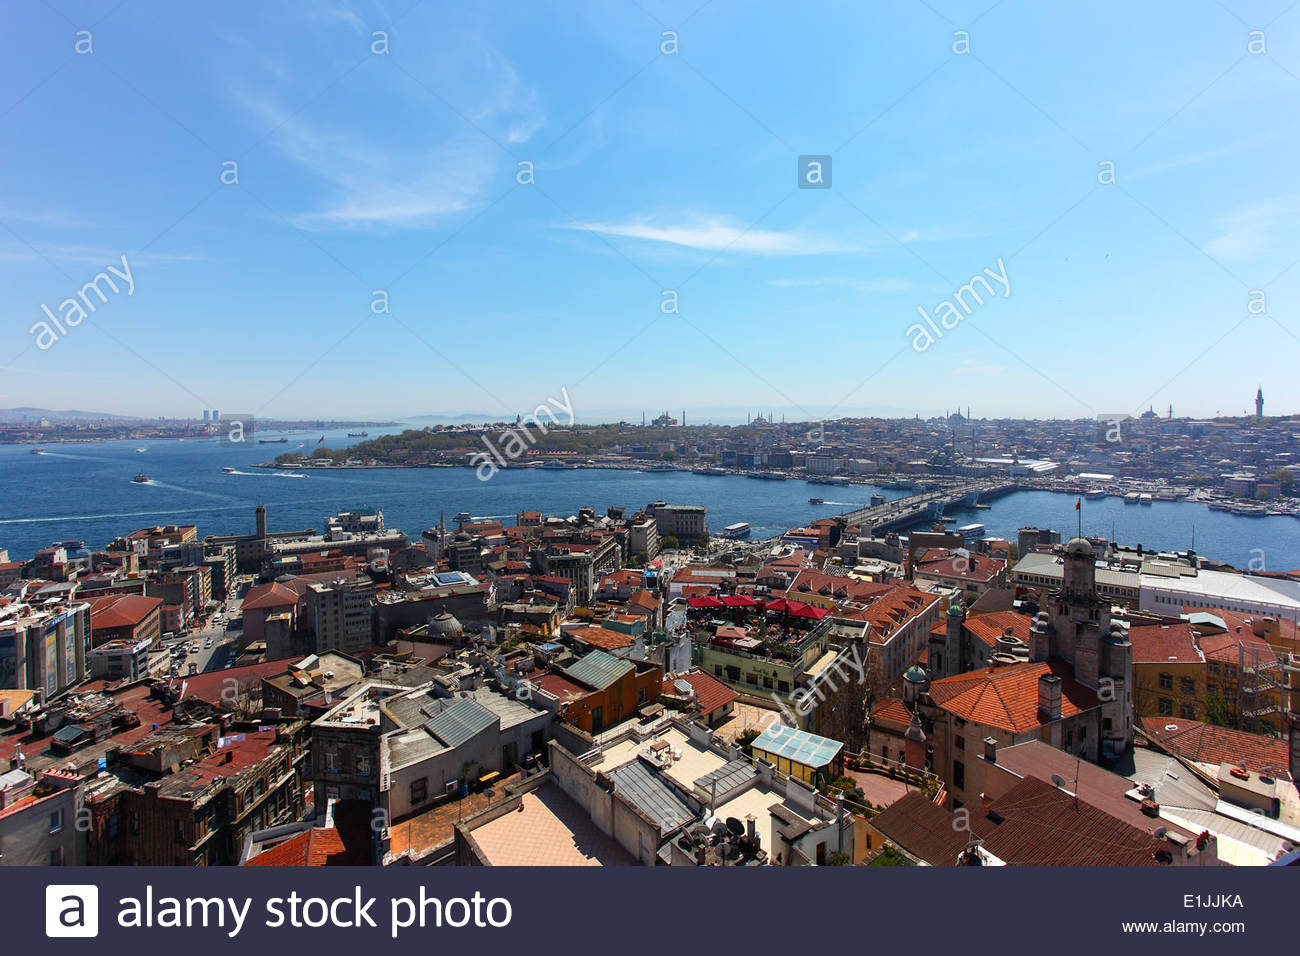 View of the Golden Horn and the Bosphorus strait from Galata Tower, in Istanbul, Turkey Stock Photo